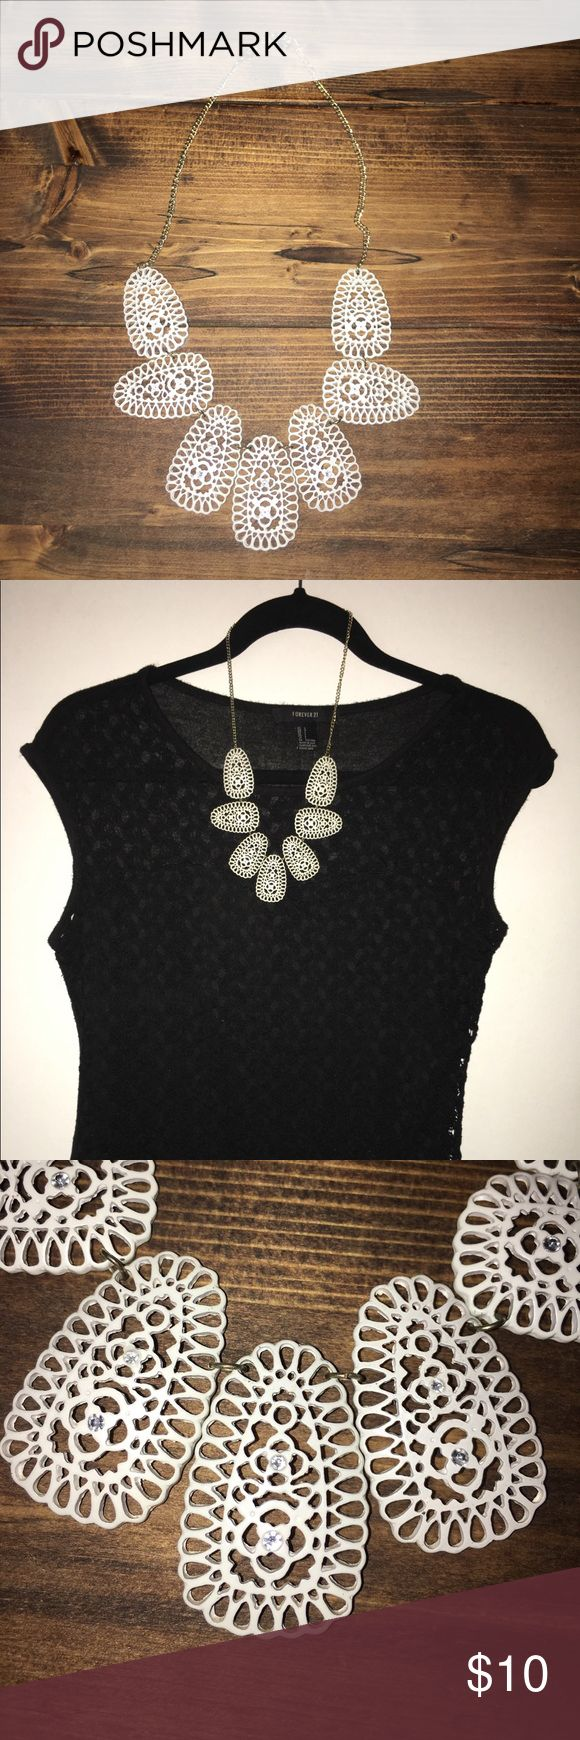 White Statement Necklace One of my favorites! I only wore this once with a black dress and 😍. Well taken care of. Icing Jewelry Necklaces